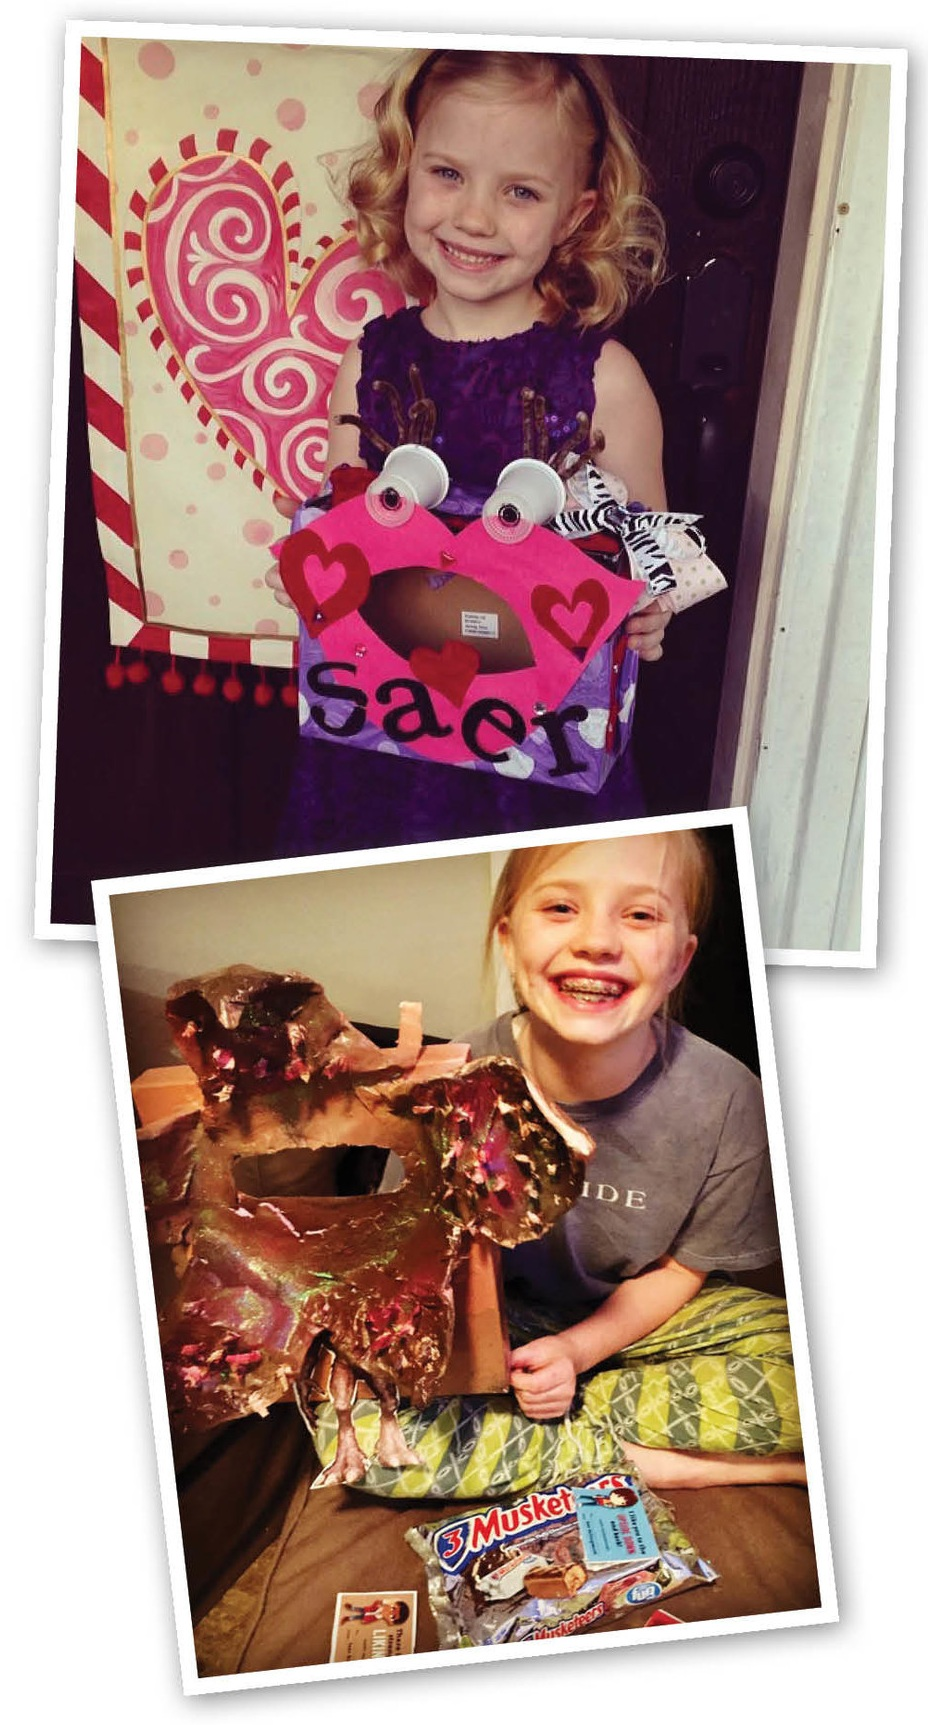 Your child will probably need a Valentine box, which is a fun way to get creative! You can turn a shoebox into anything— even a Demogorgon—with some imagination (and a little papier mache).